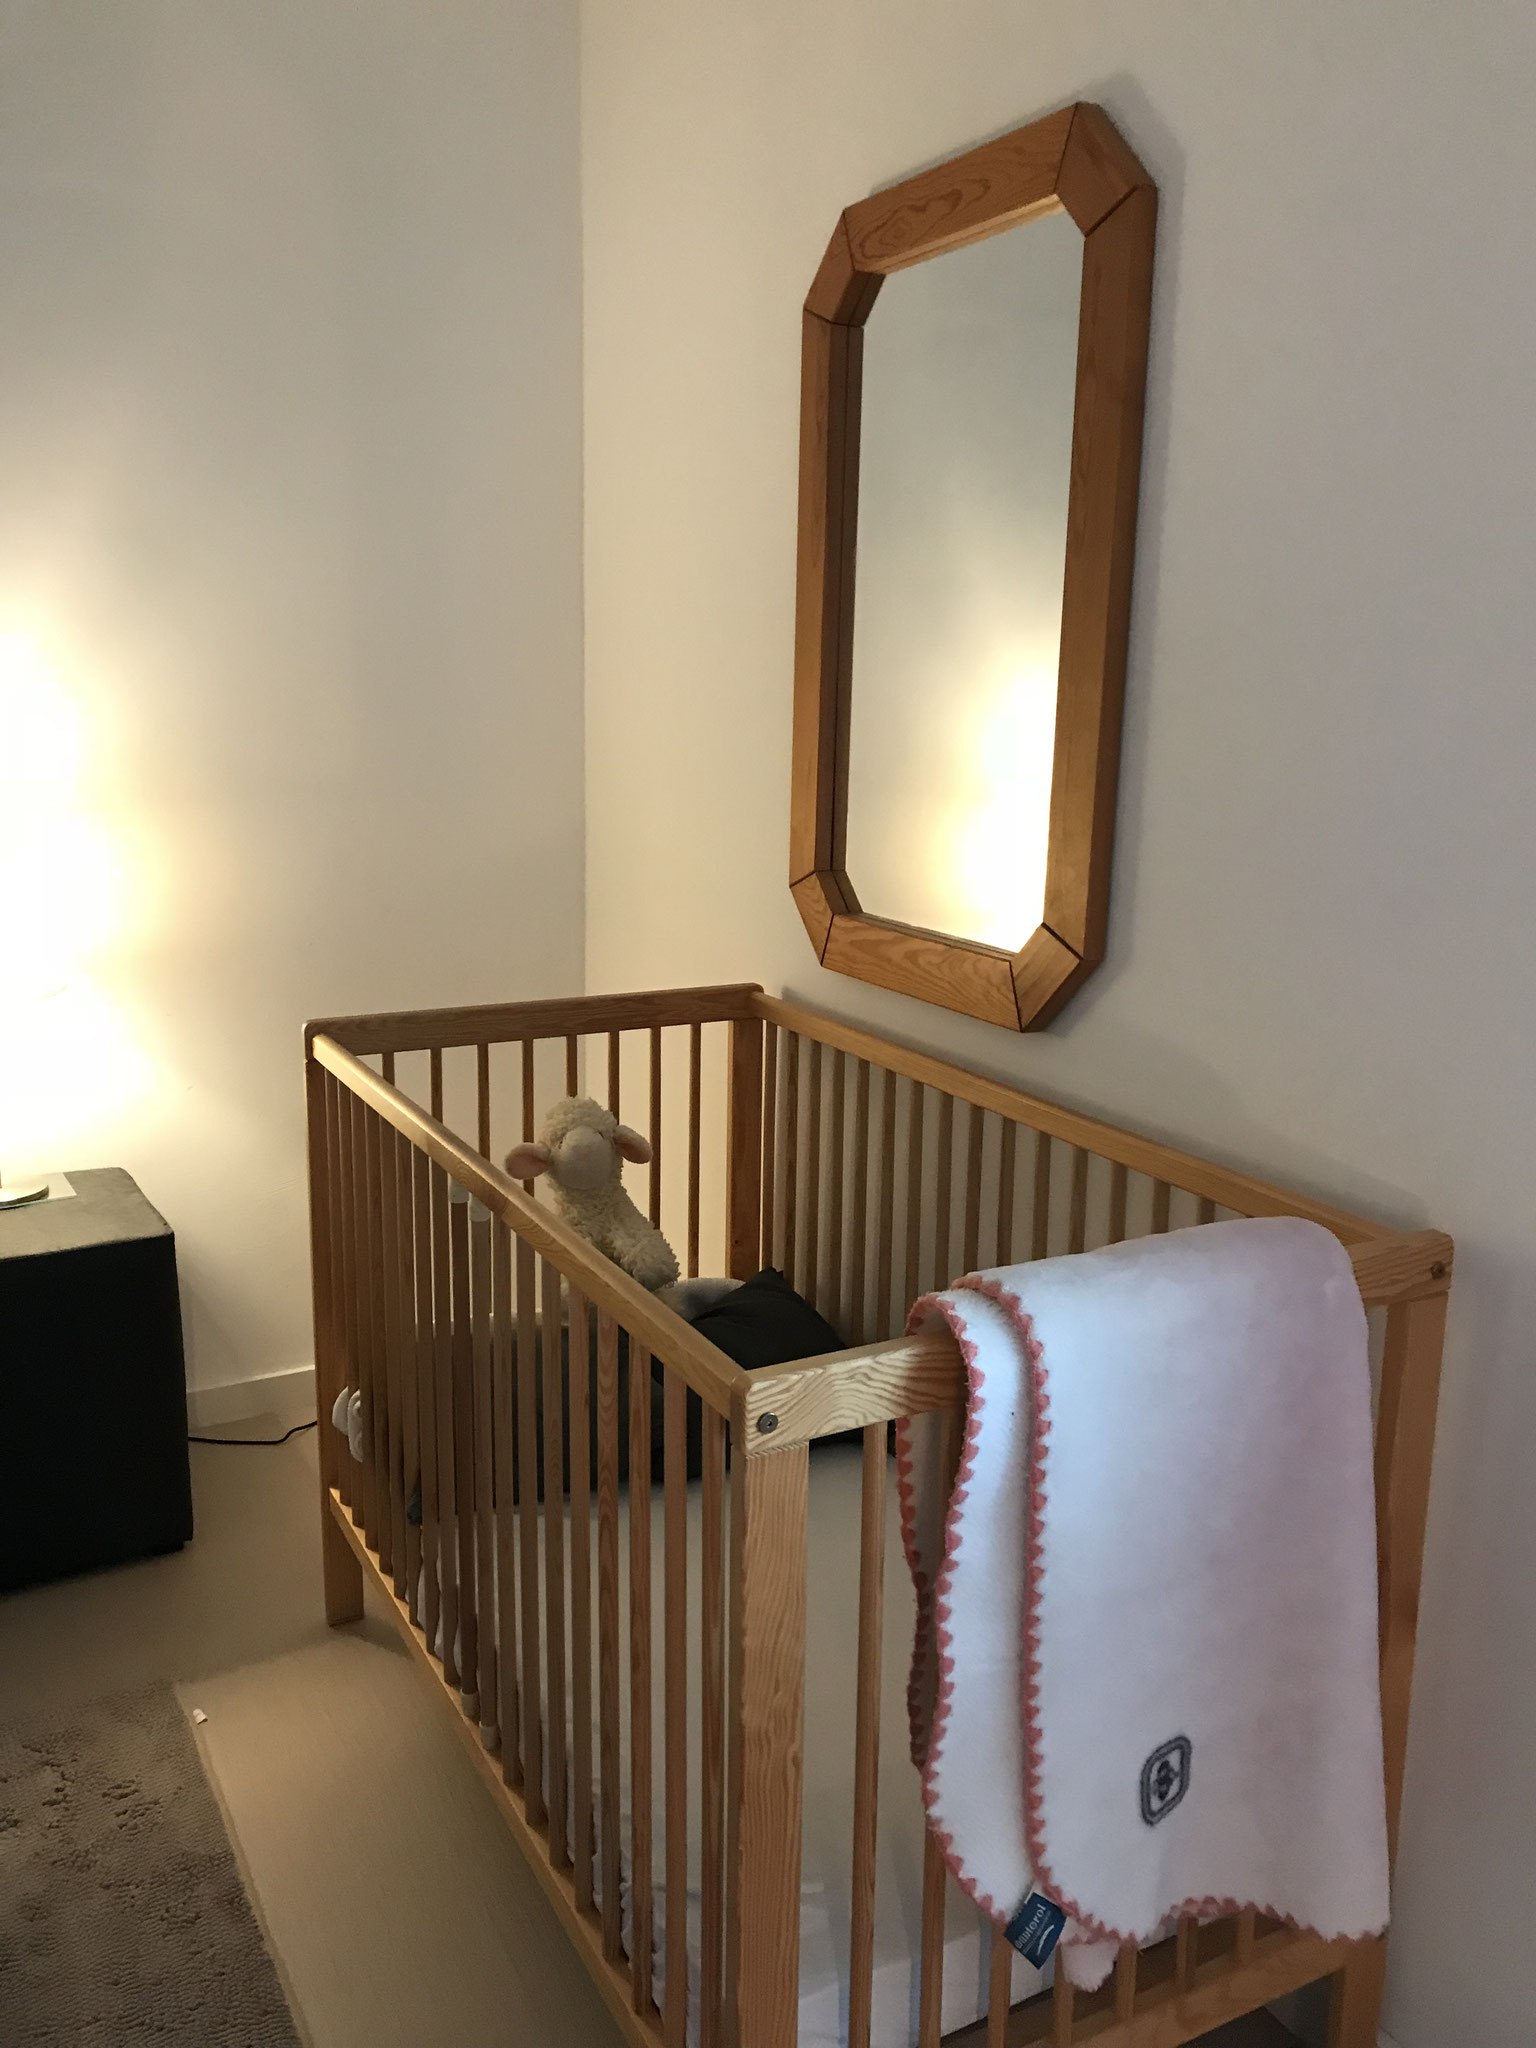 for the little ones there is also a cot